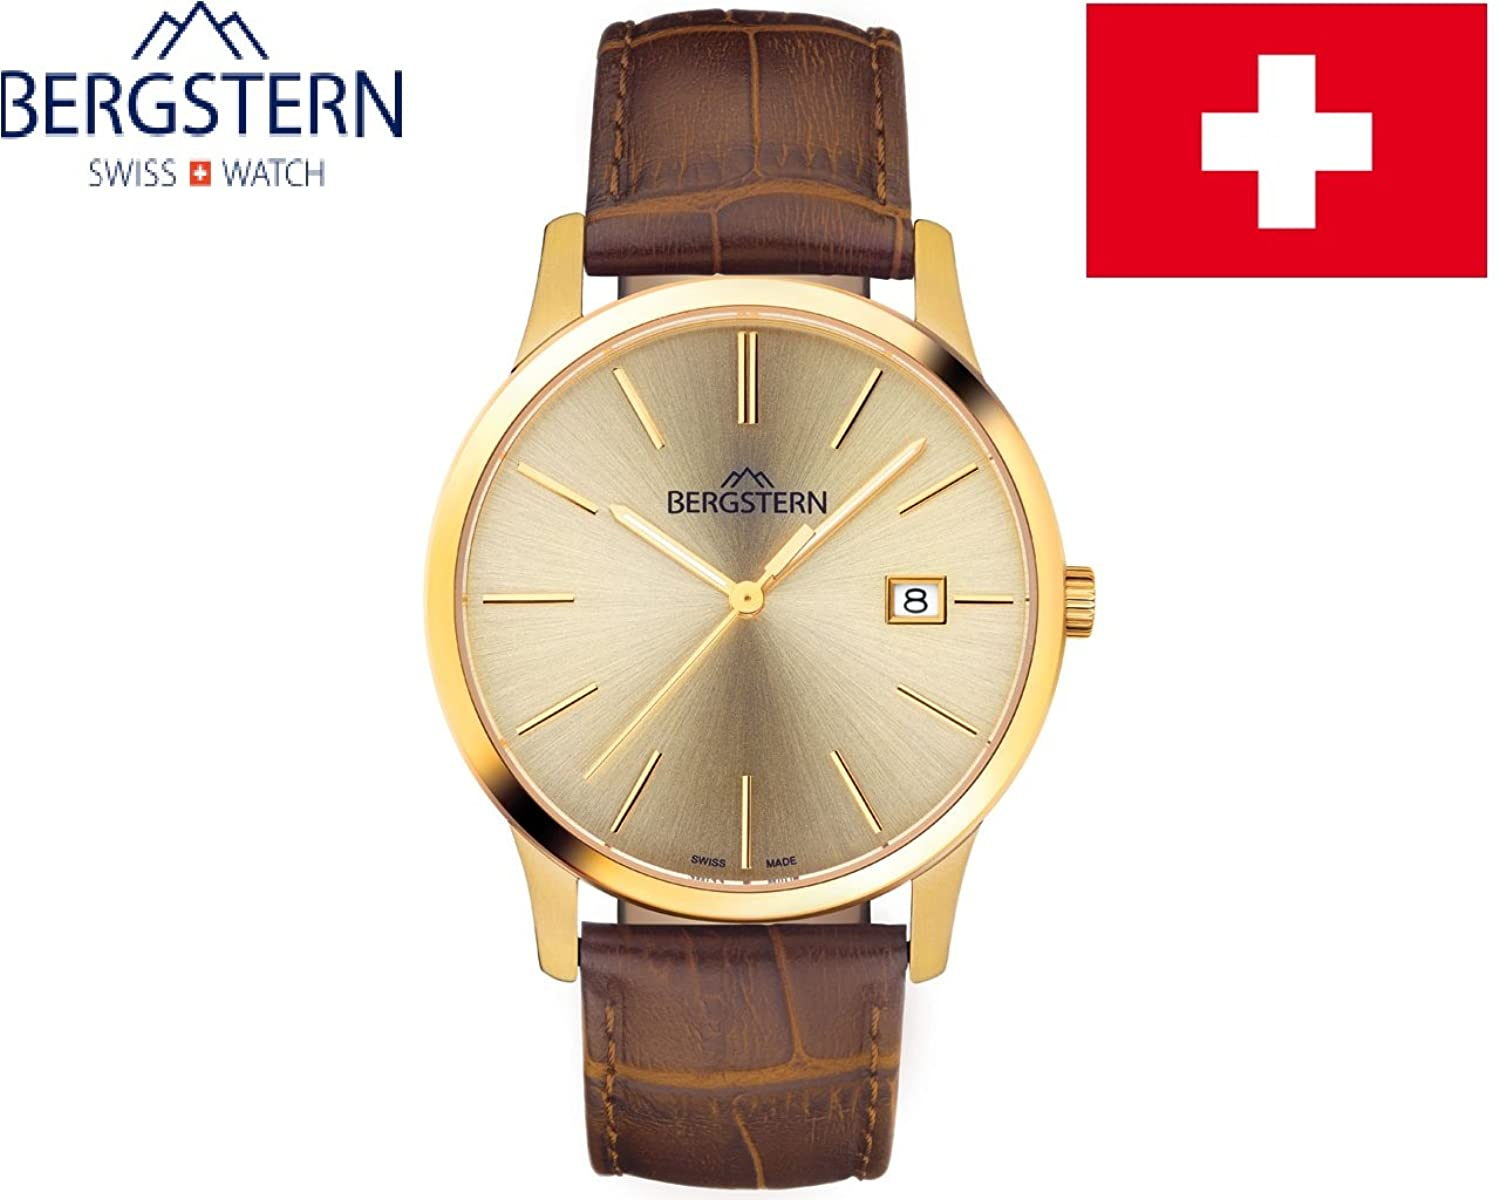 ARMBANDUHR MEN'S COLLECTION HARMONY BERGSTERN B008G053 .made SWISS whatch hoher QualitÄt MADE IN SVIZZERA.Cinturino